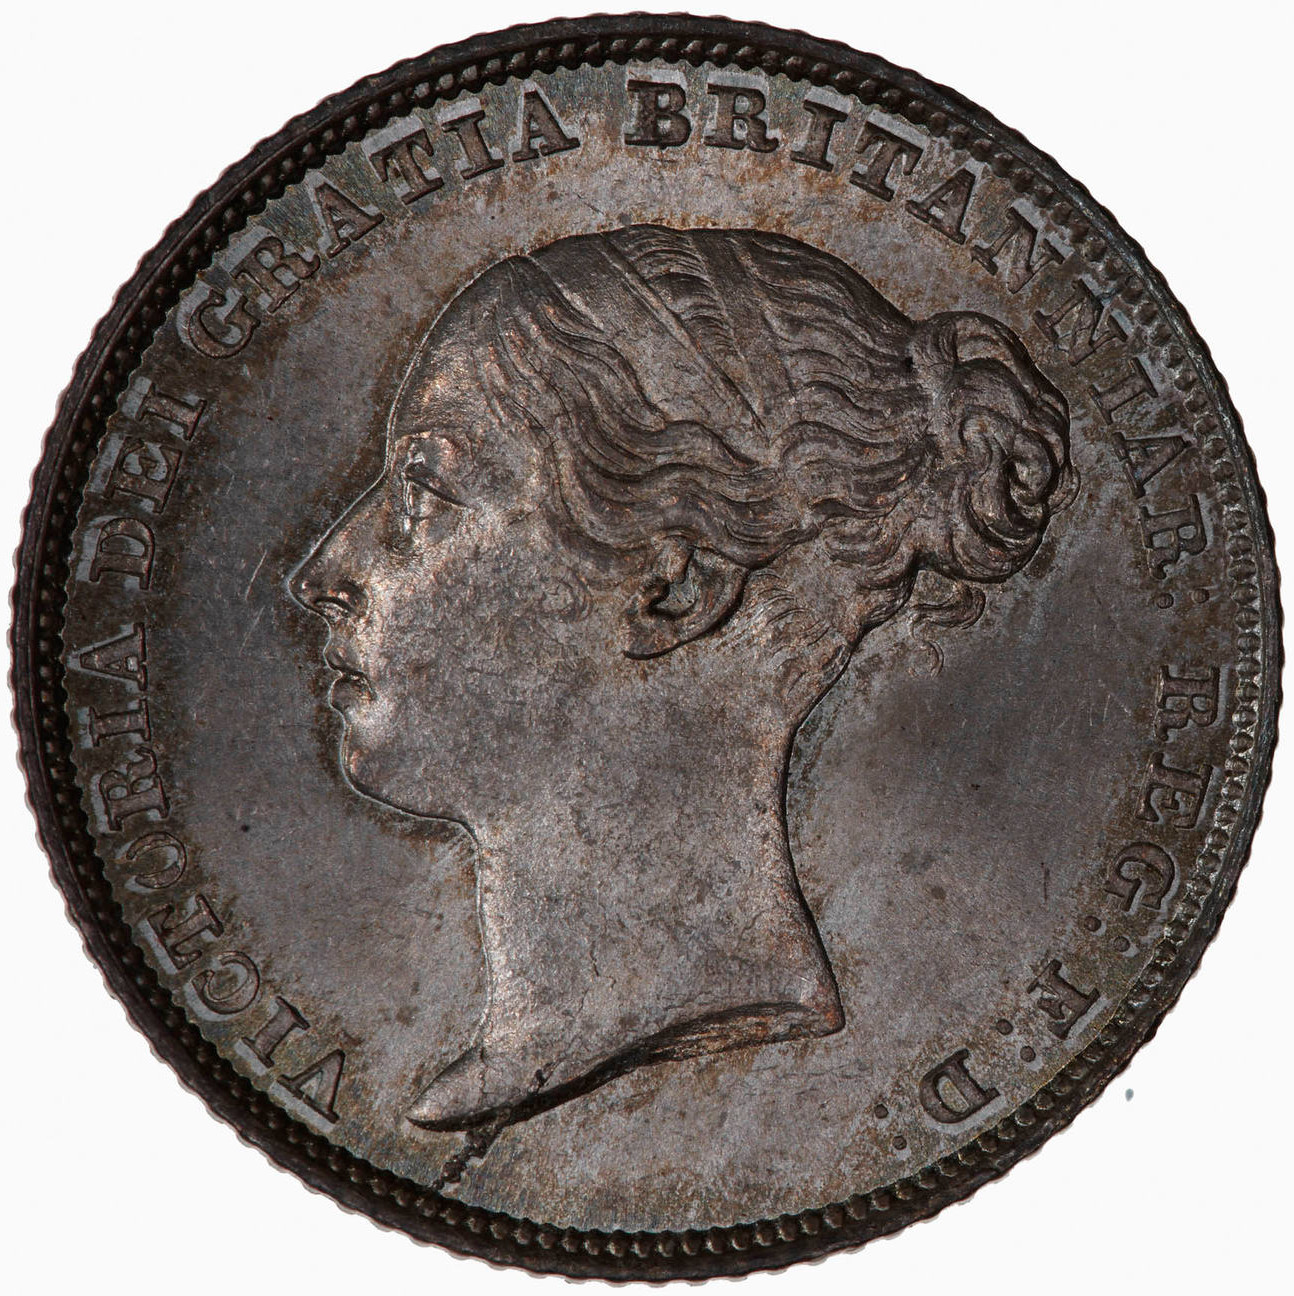 Sixpence 1851: Photo Coin - Sixpence, Queen Victoria, Great Britain, 1851